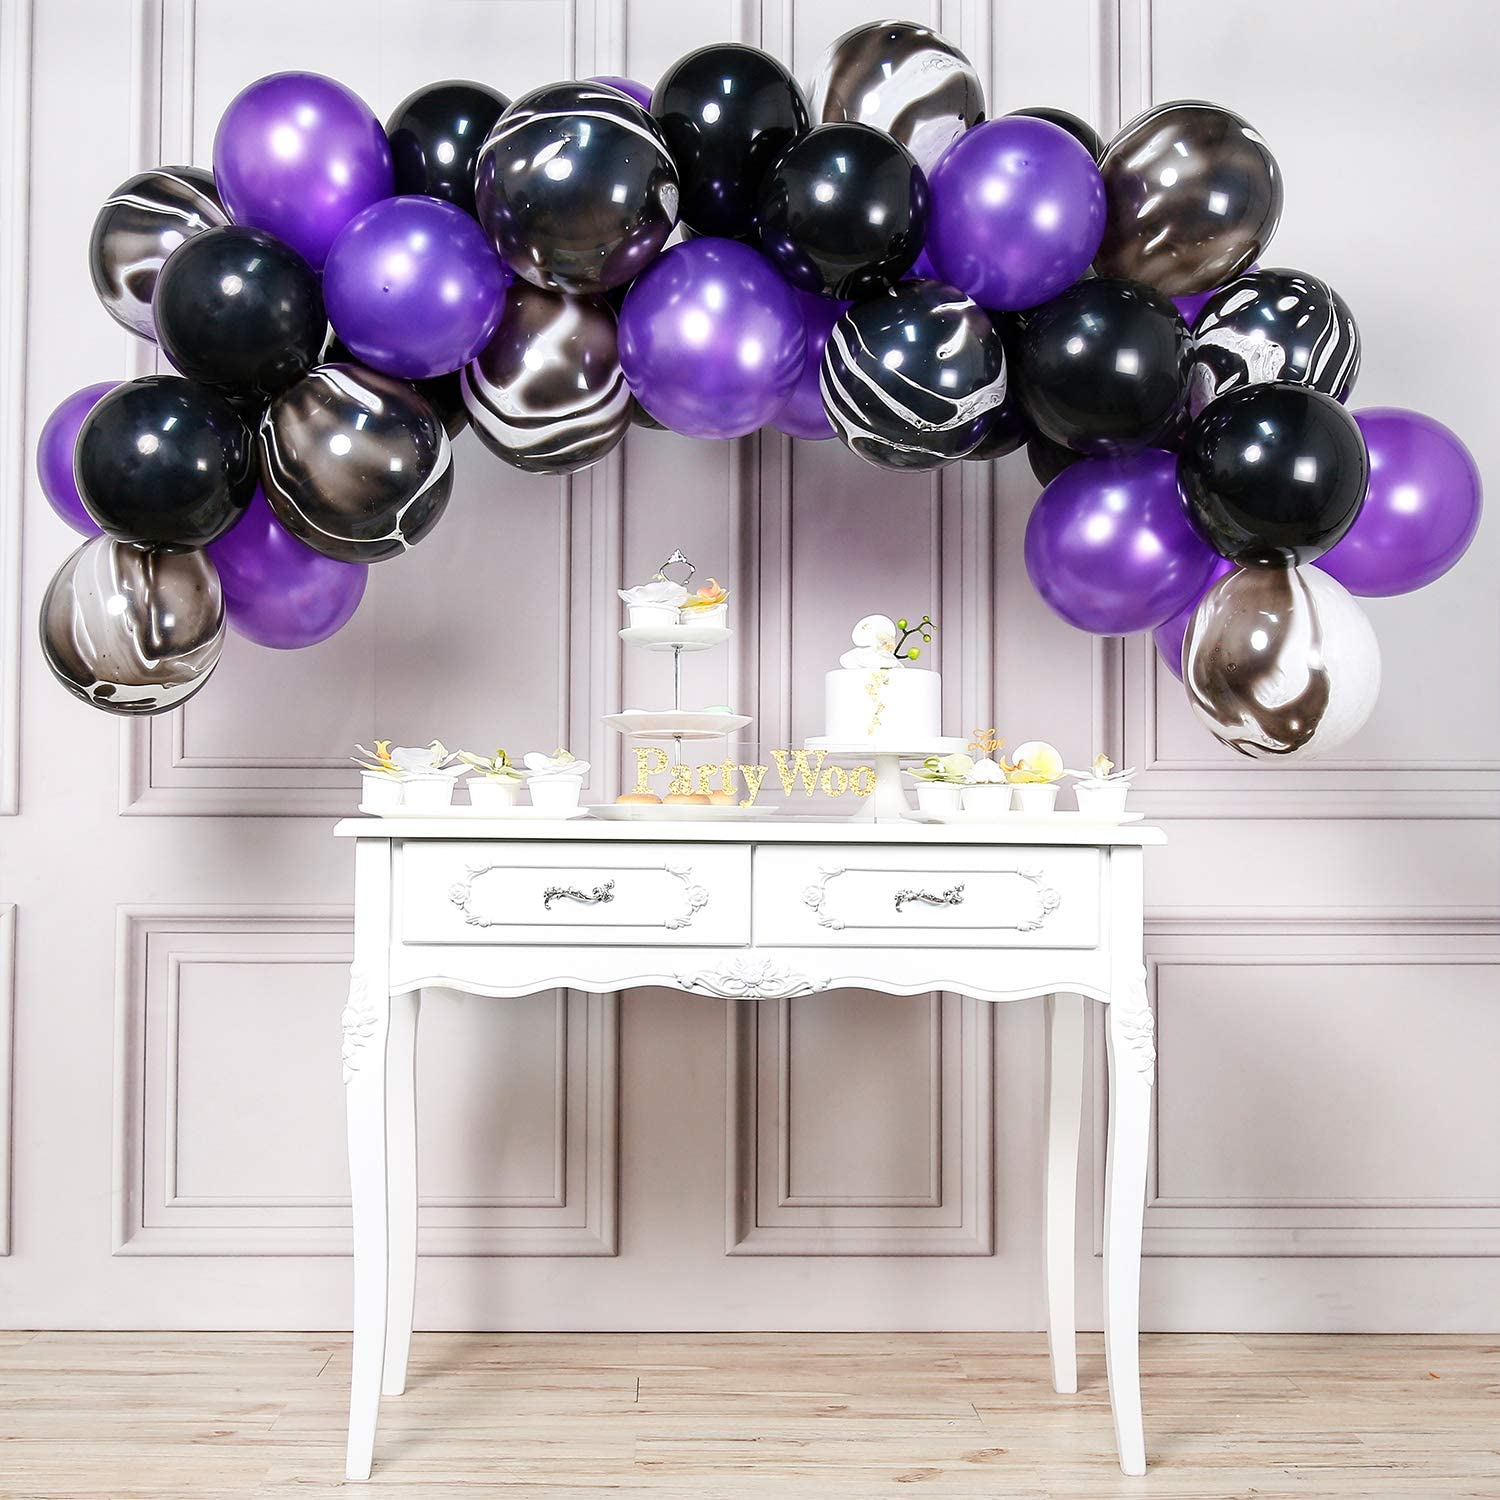 PartyWoo Black and Purple Balloons, 40 pcs 12 Inch Pearl Purple Balloons, Marble Balloons, Purple and Black Balloons, Royal Purple Balloons for Purple ...